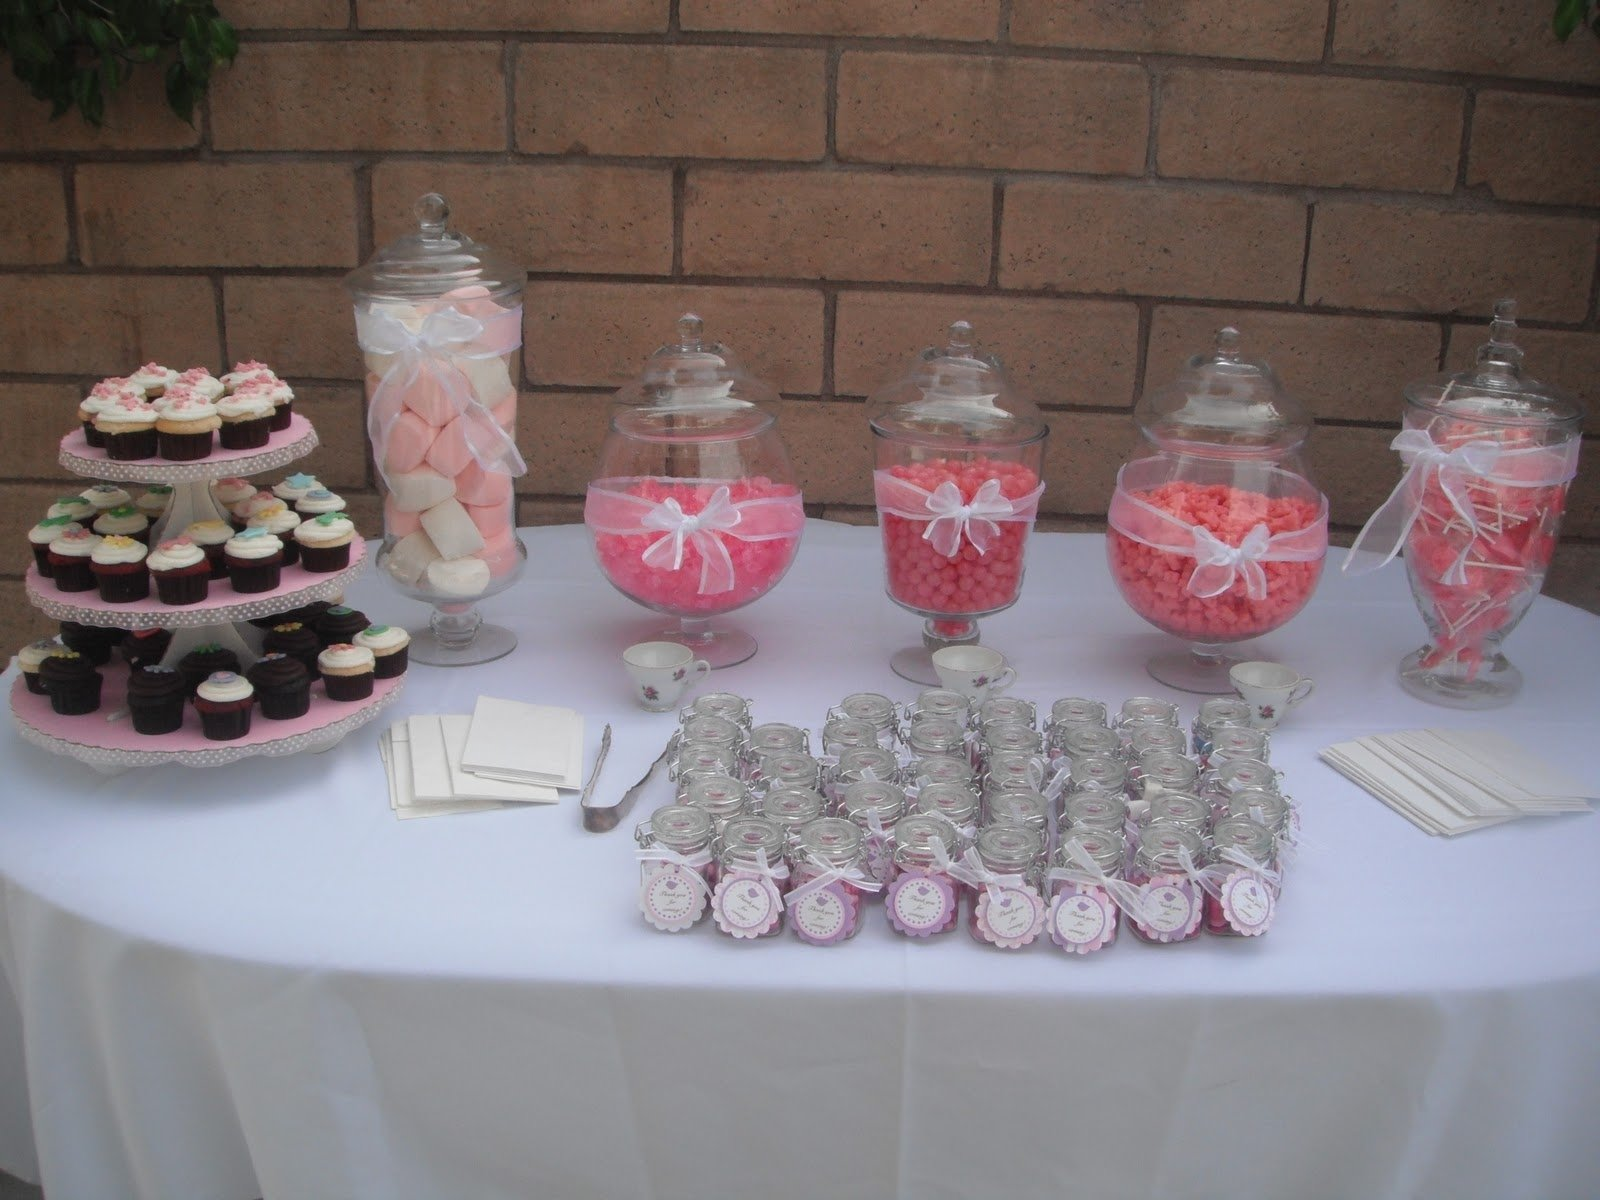 10 Elegant Baby Shower Candy Bar Ideas cute simple baby shower candy bar ideas baby shower ideas gallery 2021